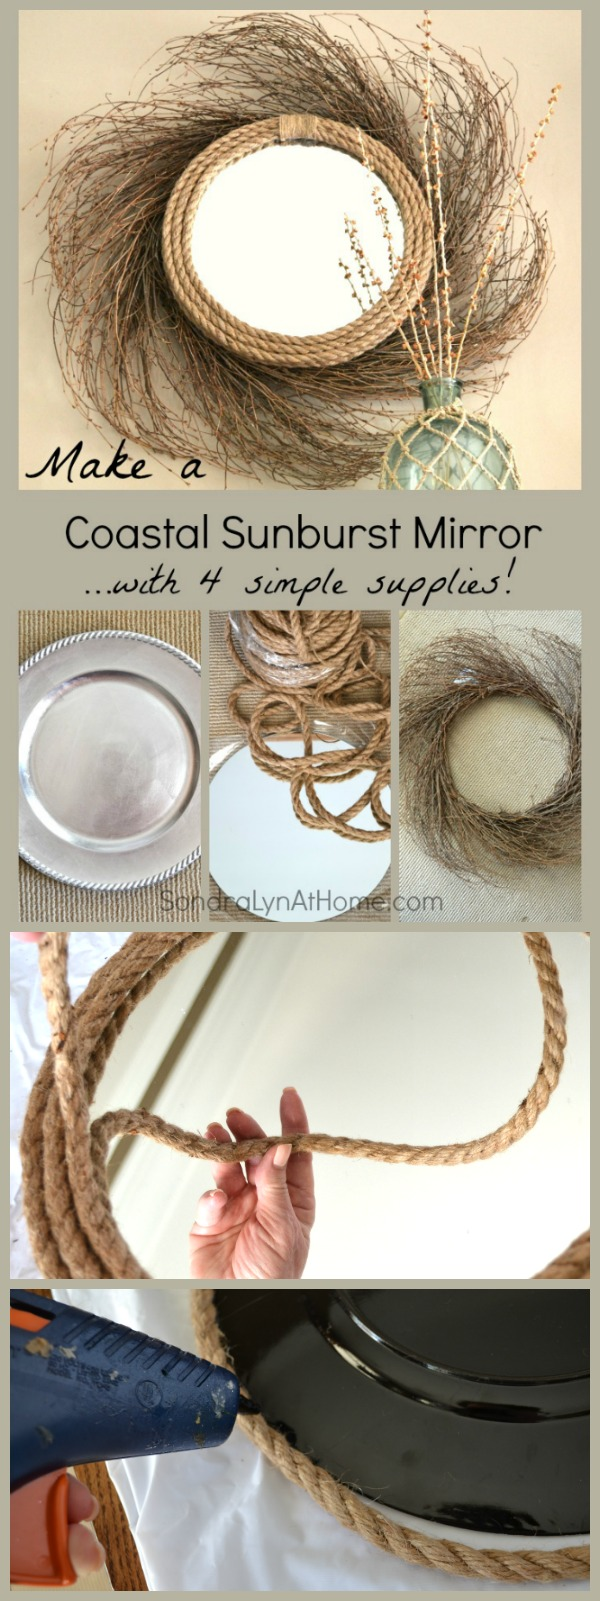 Make a Sunburst Mirror with a Coastal Vibe using 4 simple materials and a glue gun! - Sondra Lyn at Home.com